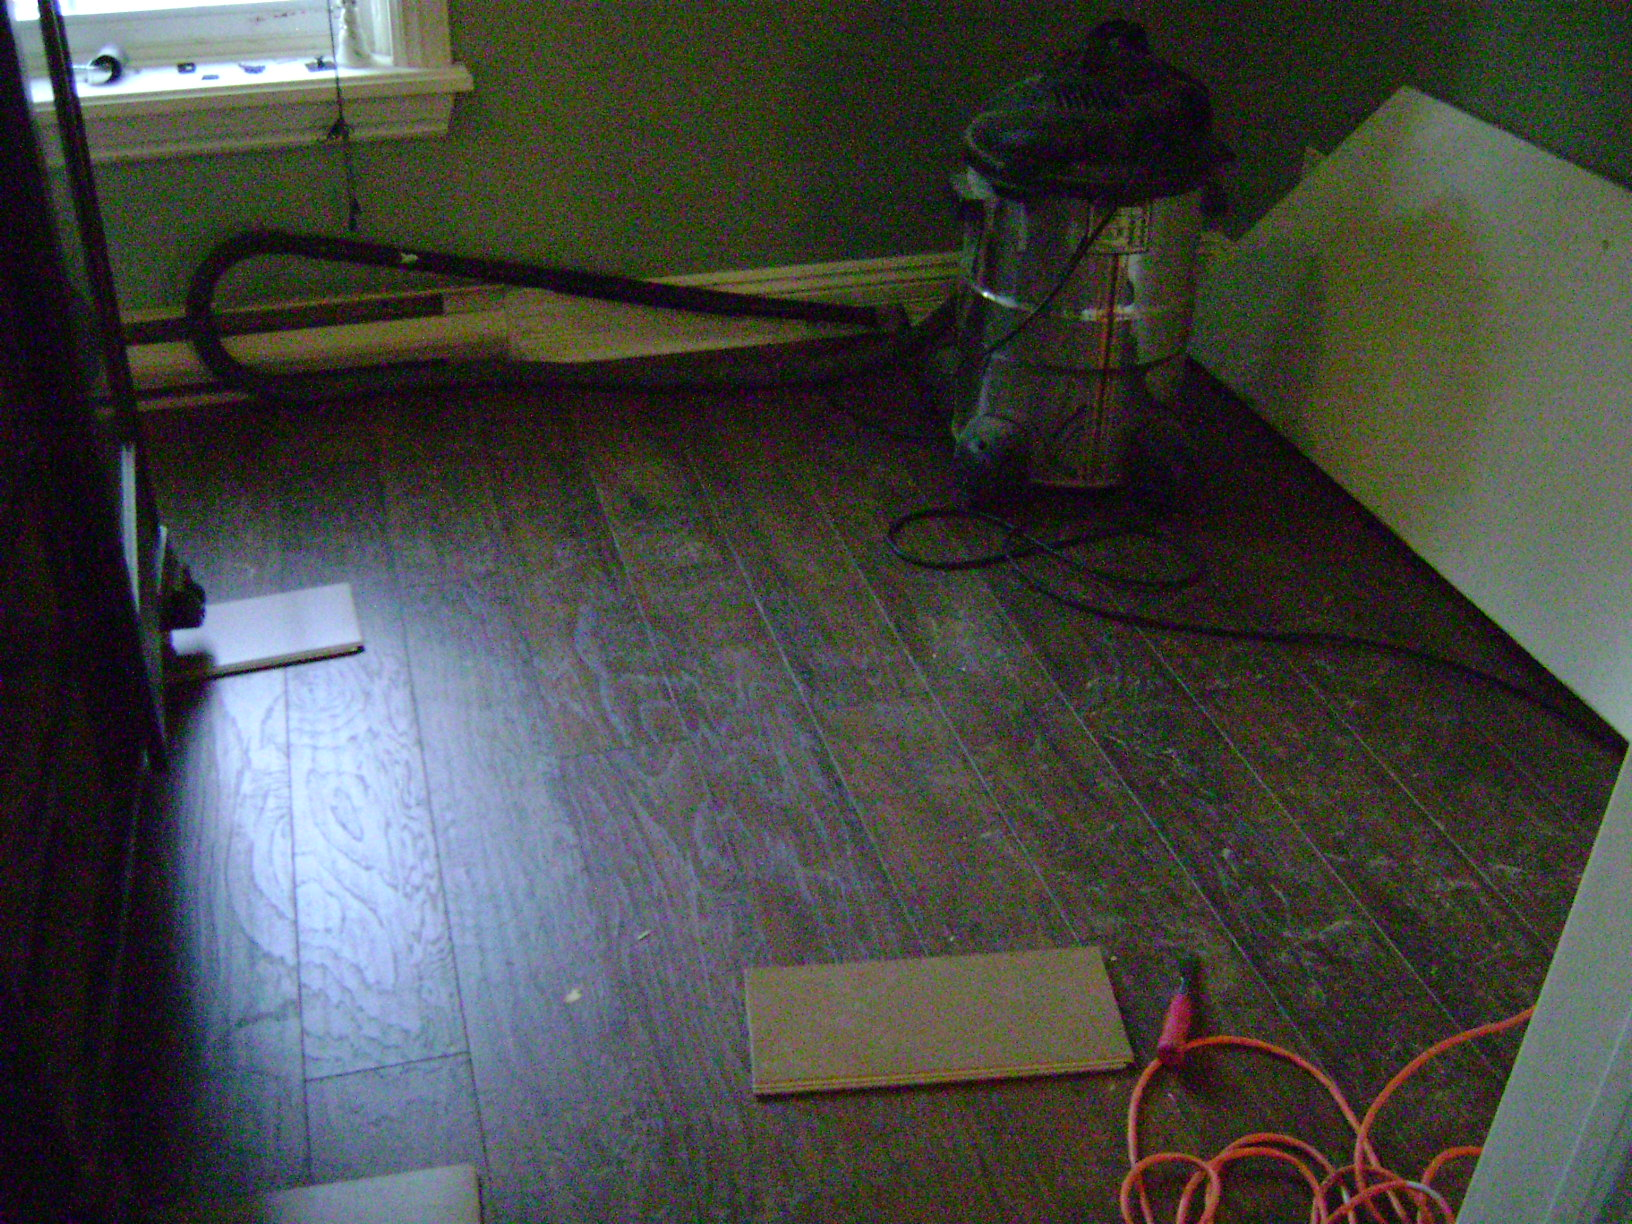 Installing a floating Wood Floor - Home Improvements - ^